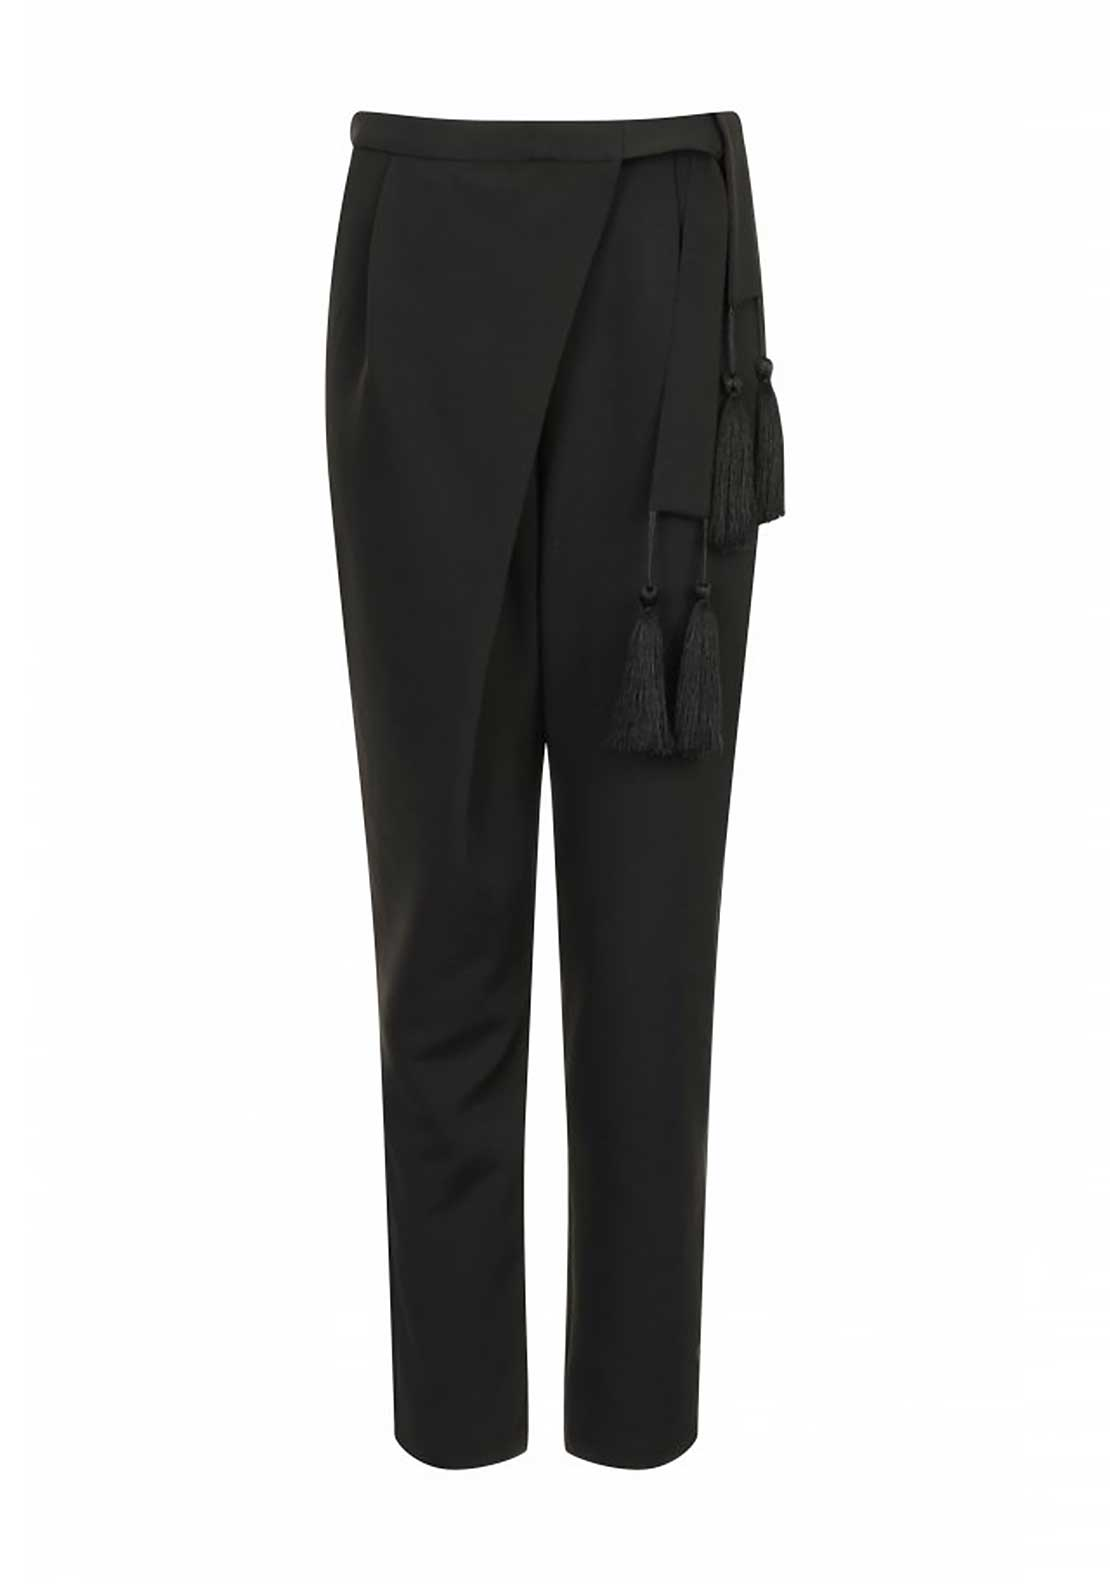 Lavish Alice Tassel Tie Crossover Trousers, Black